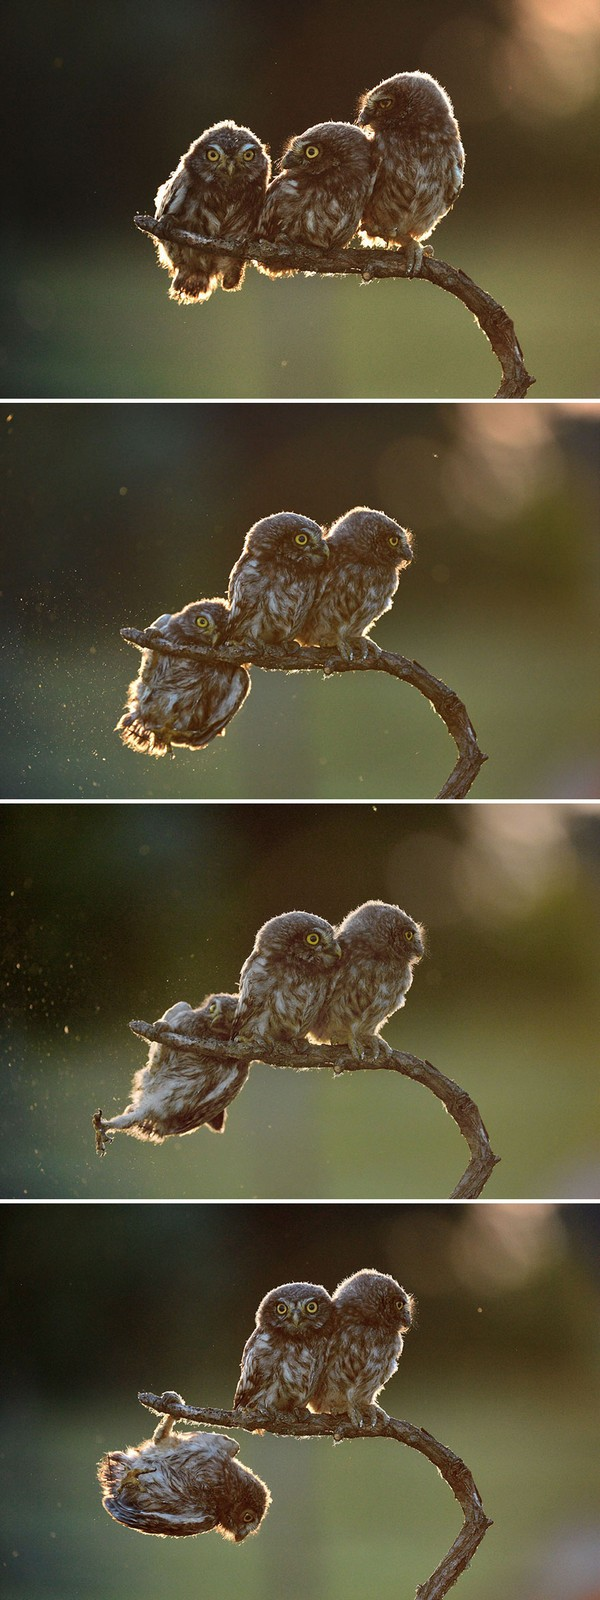 """2017 Comedy Wildlife Photography Award Winners - Overall Winner 2017 """"Help"""" And Winner Of Amazing Internet Portfolio Prize Tibor Kerccz For His Sequence Of 4 Owl Images."""